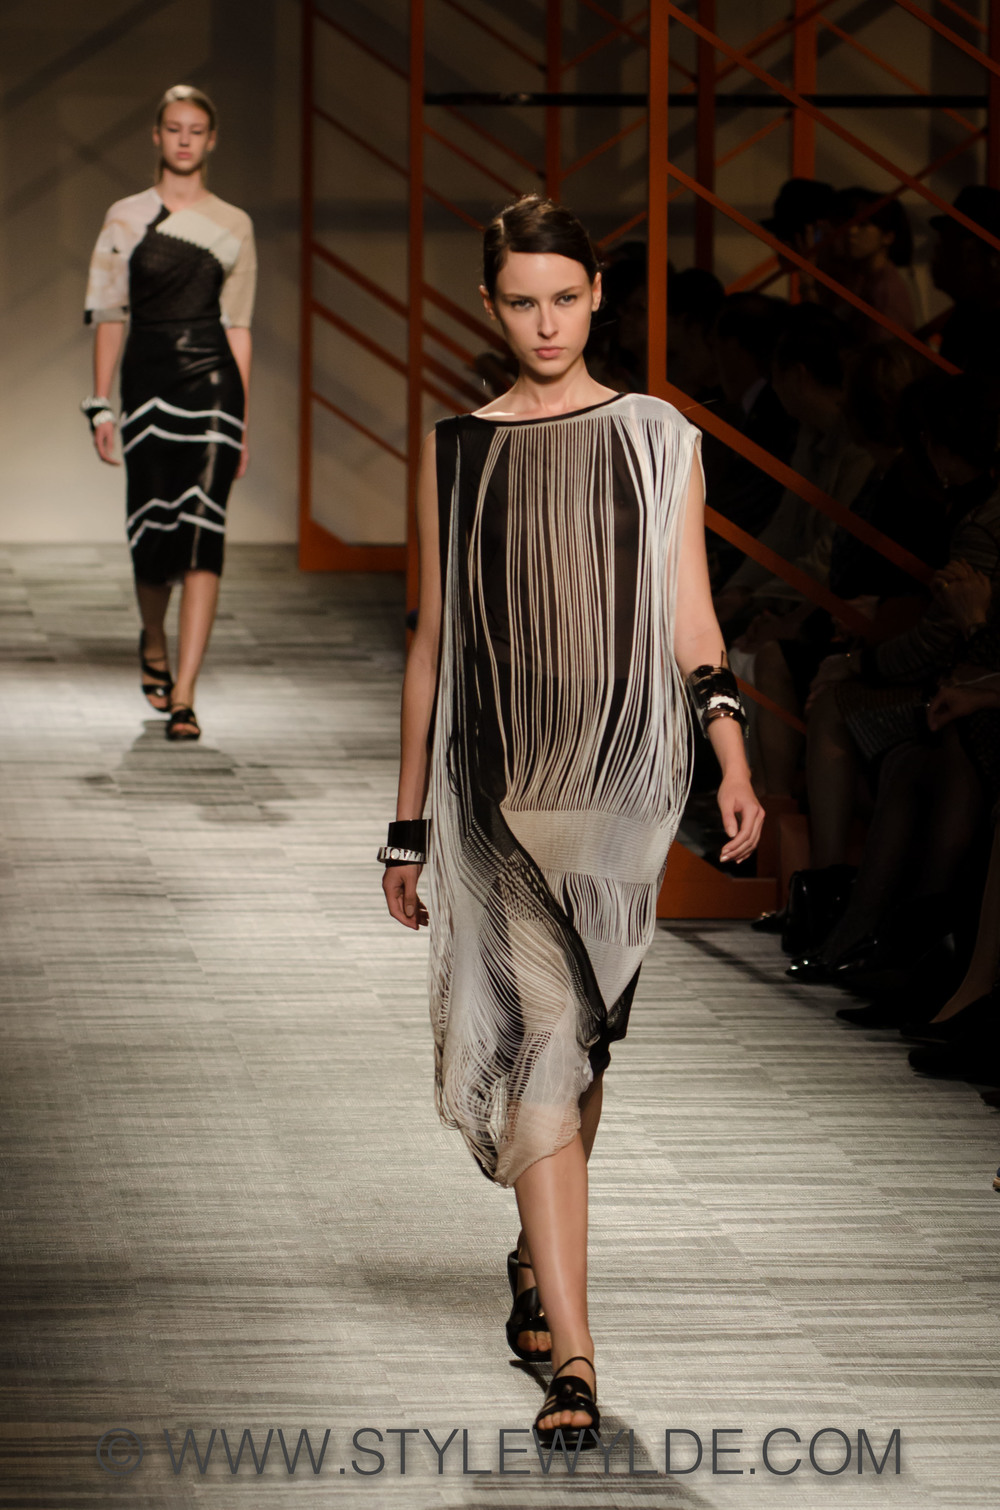 STYLEWYLDE_Missoni_SS2014 (1 of 1)-25.jpg